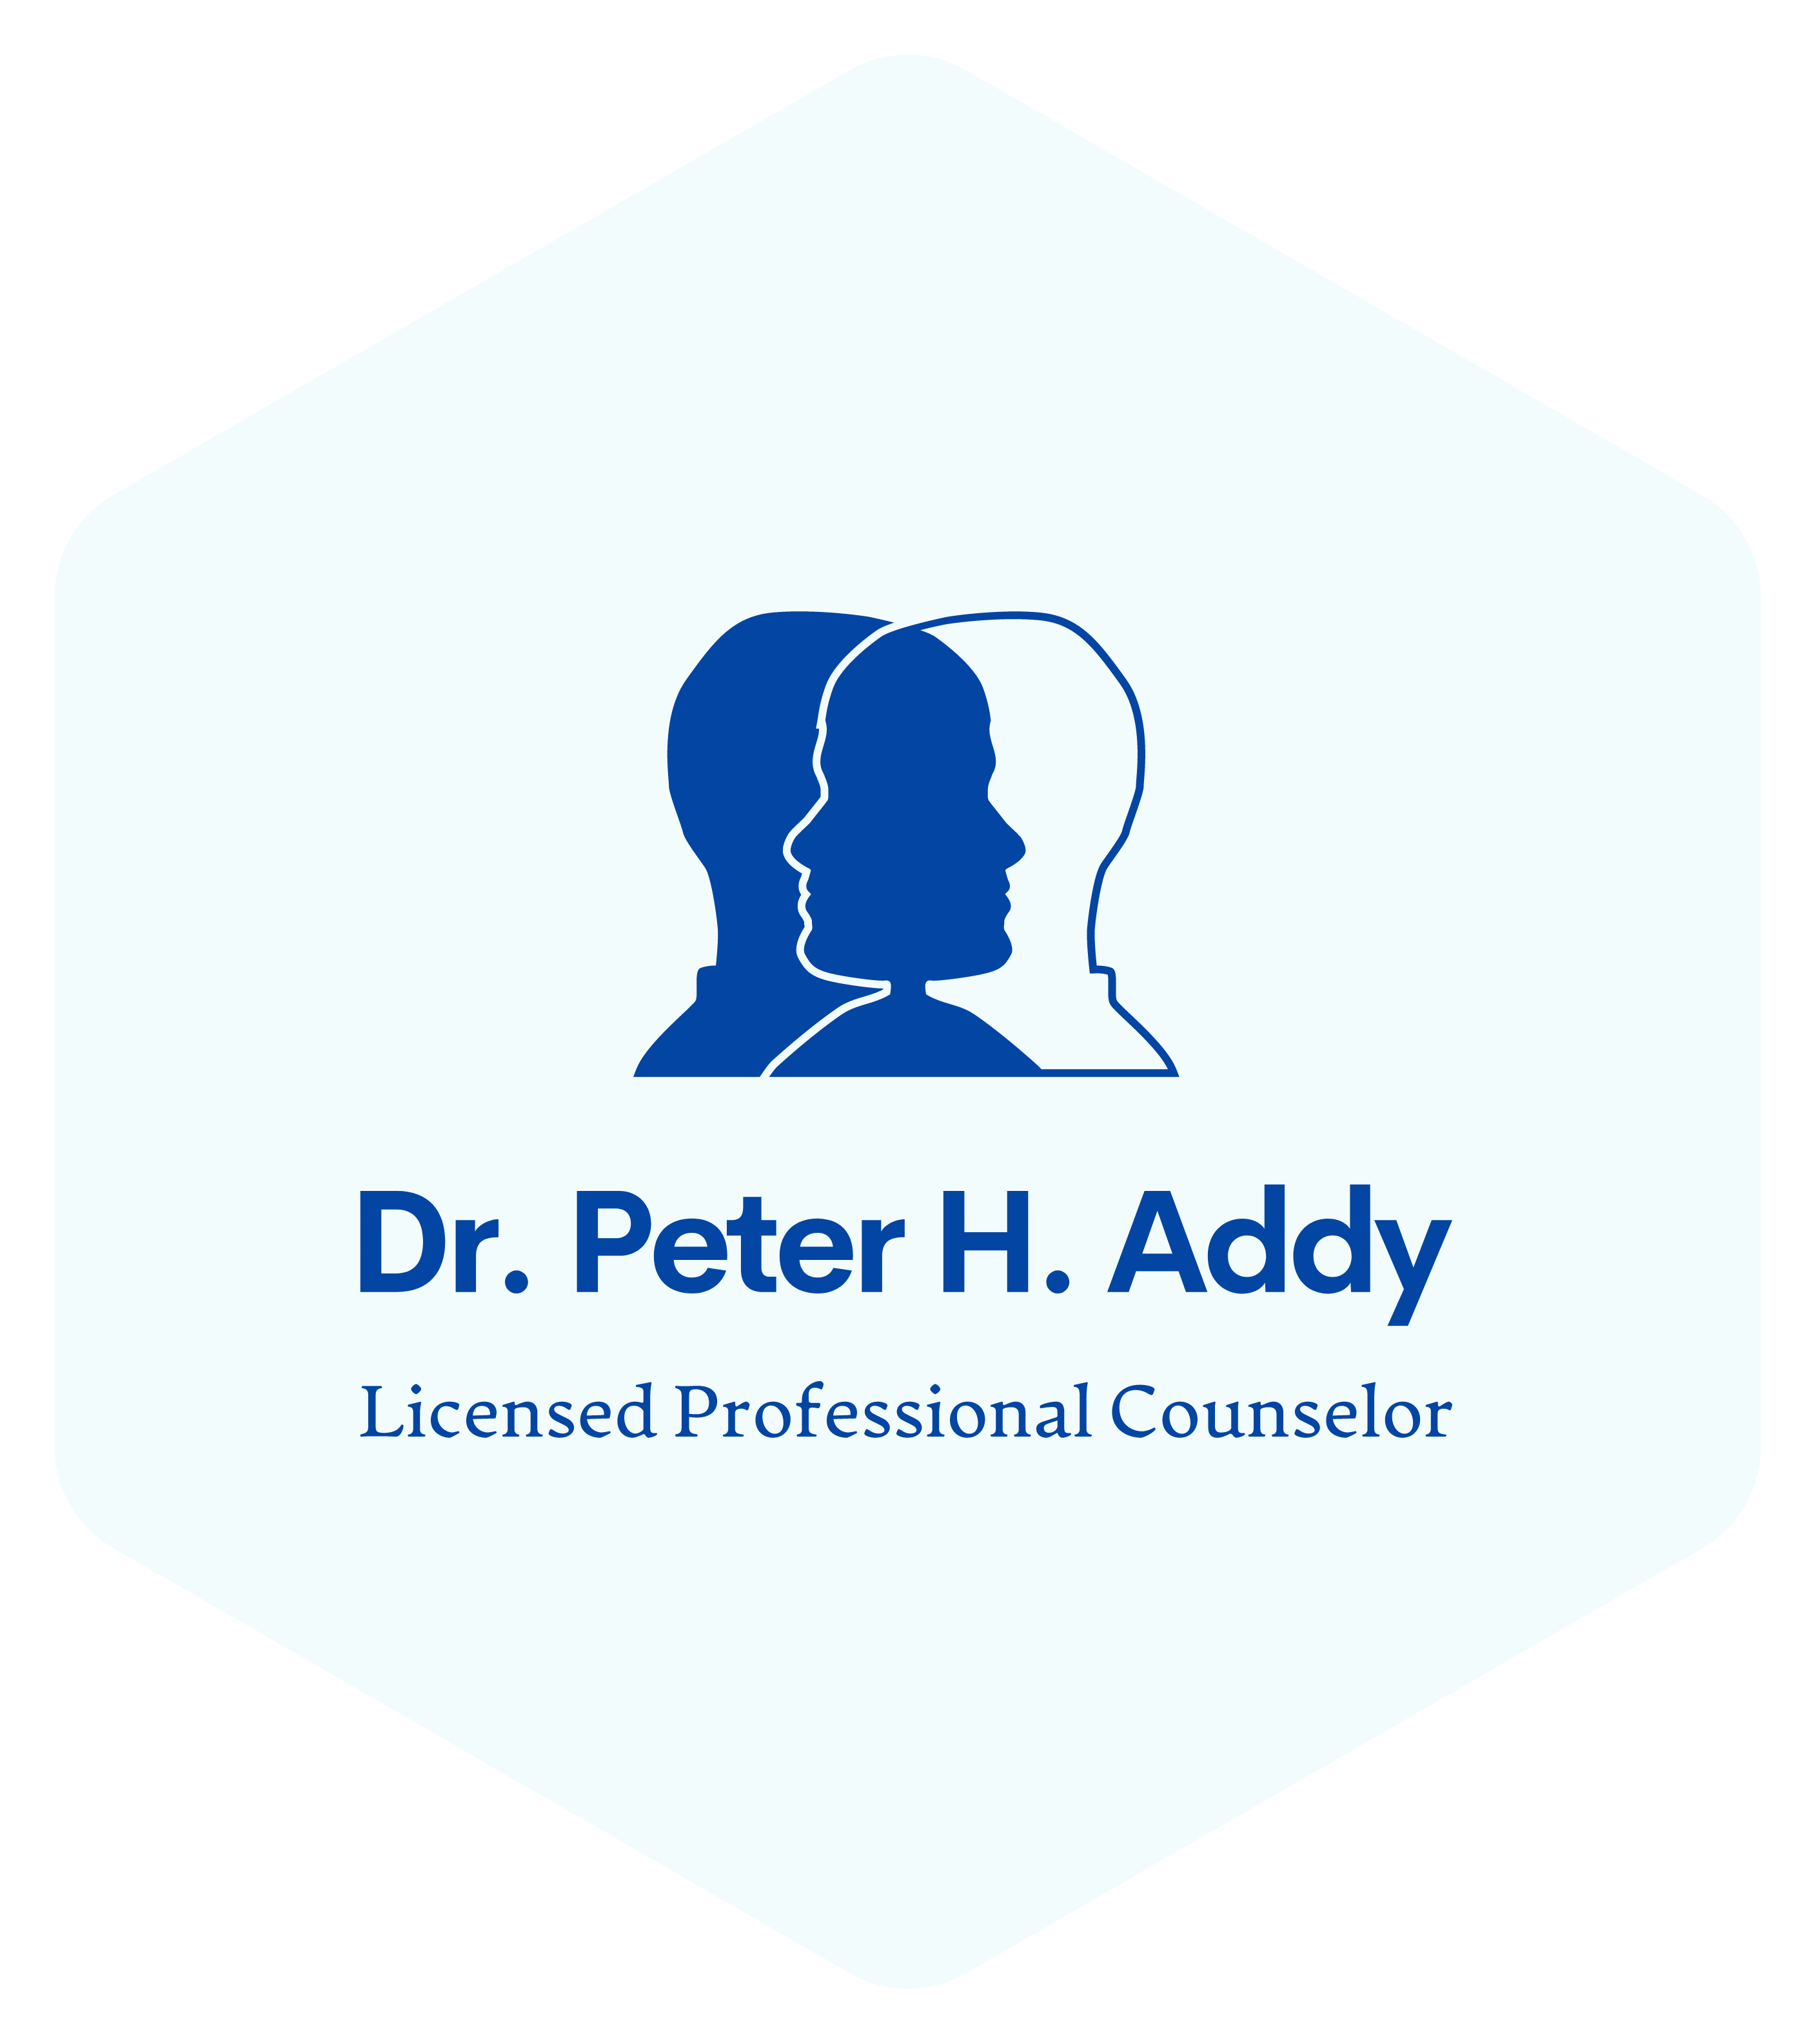 Dr. Peter H. Addy